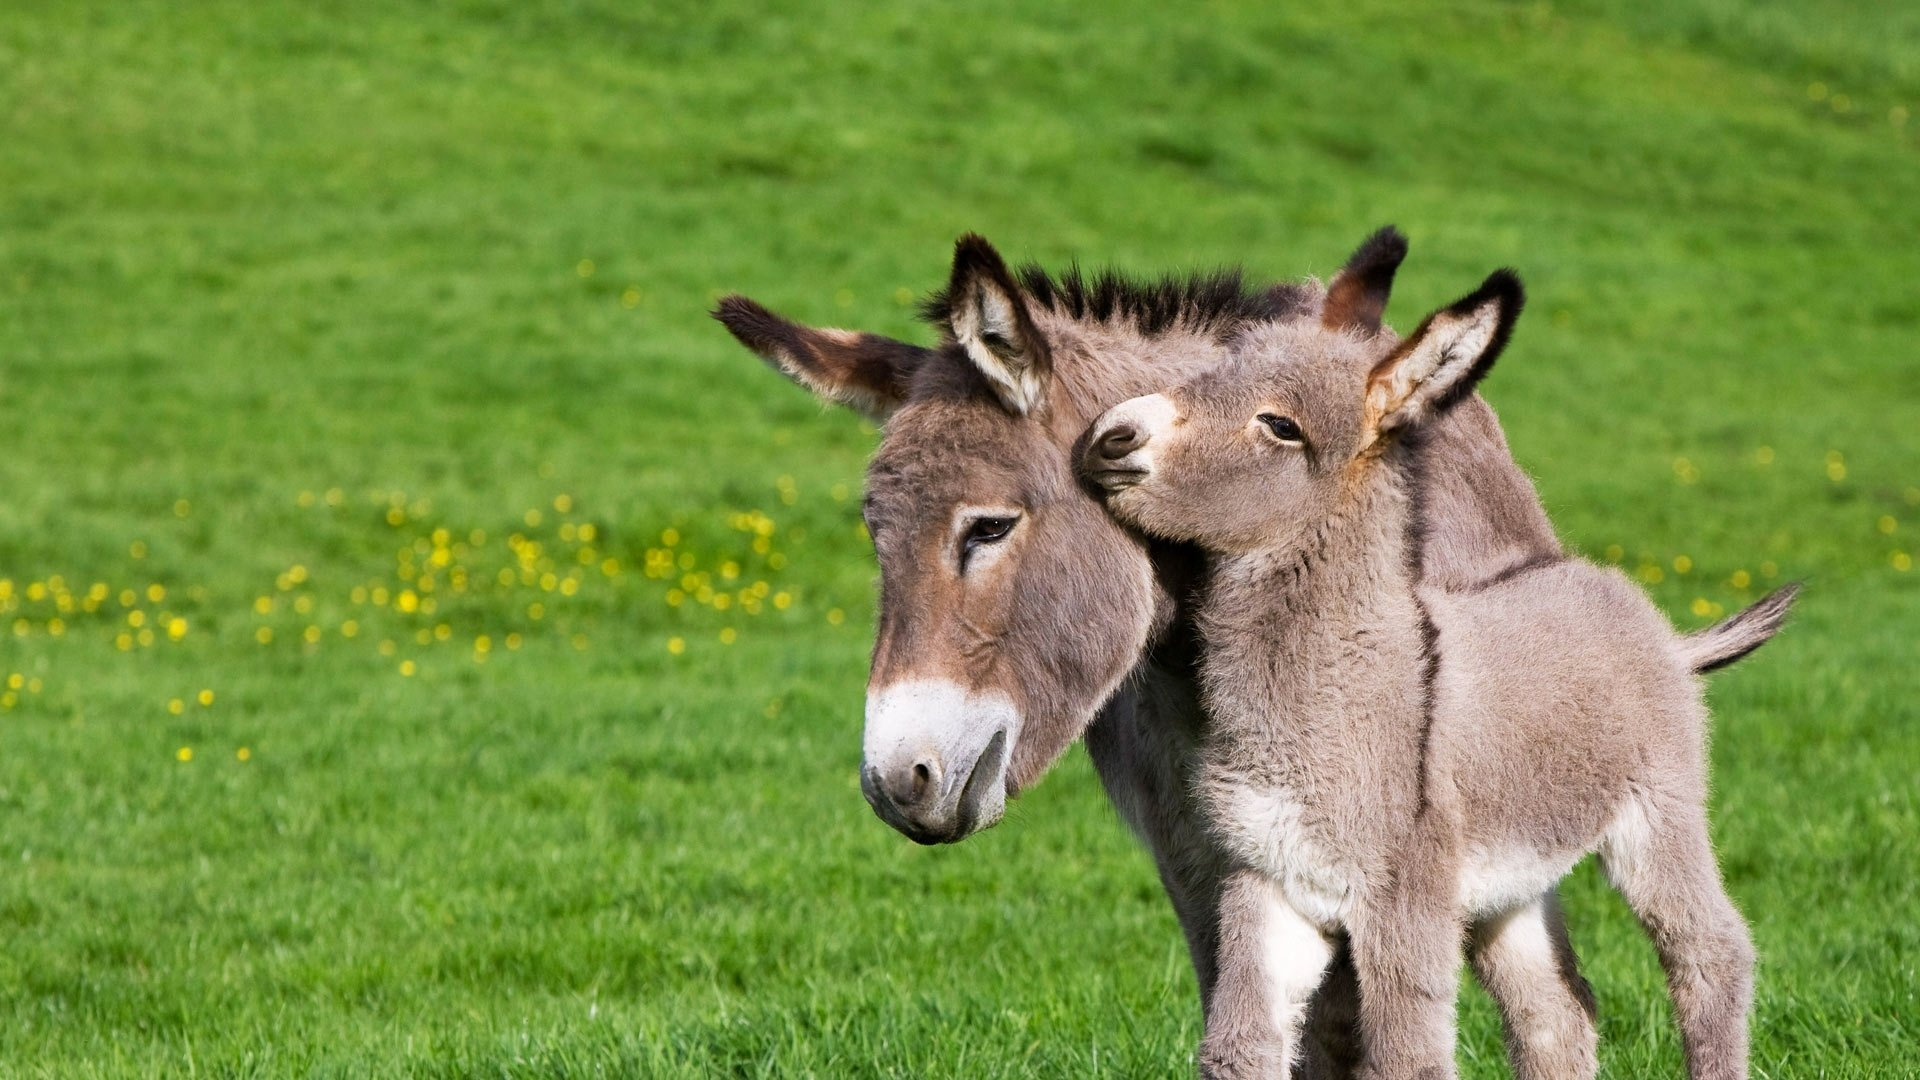 Cute Babies Hd Wallpapers 1366x768 Donkey Hd Wallpaper Background Image 1920x1080 Id